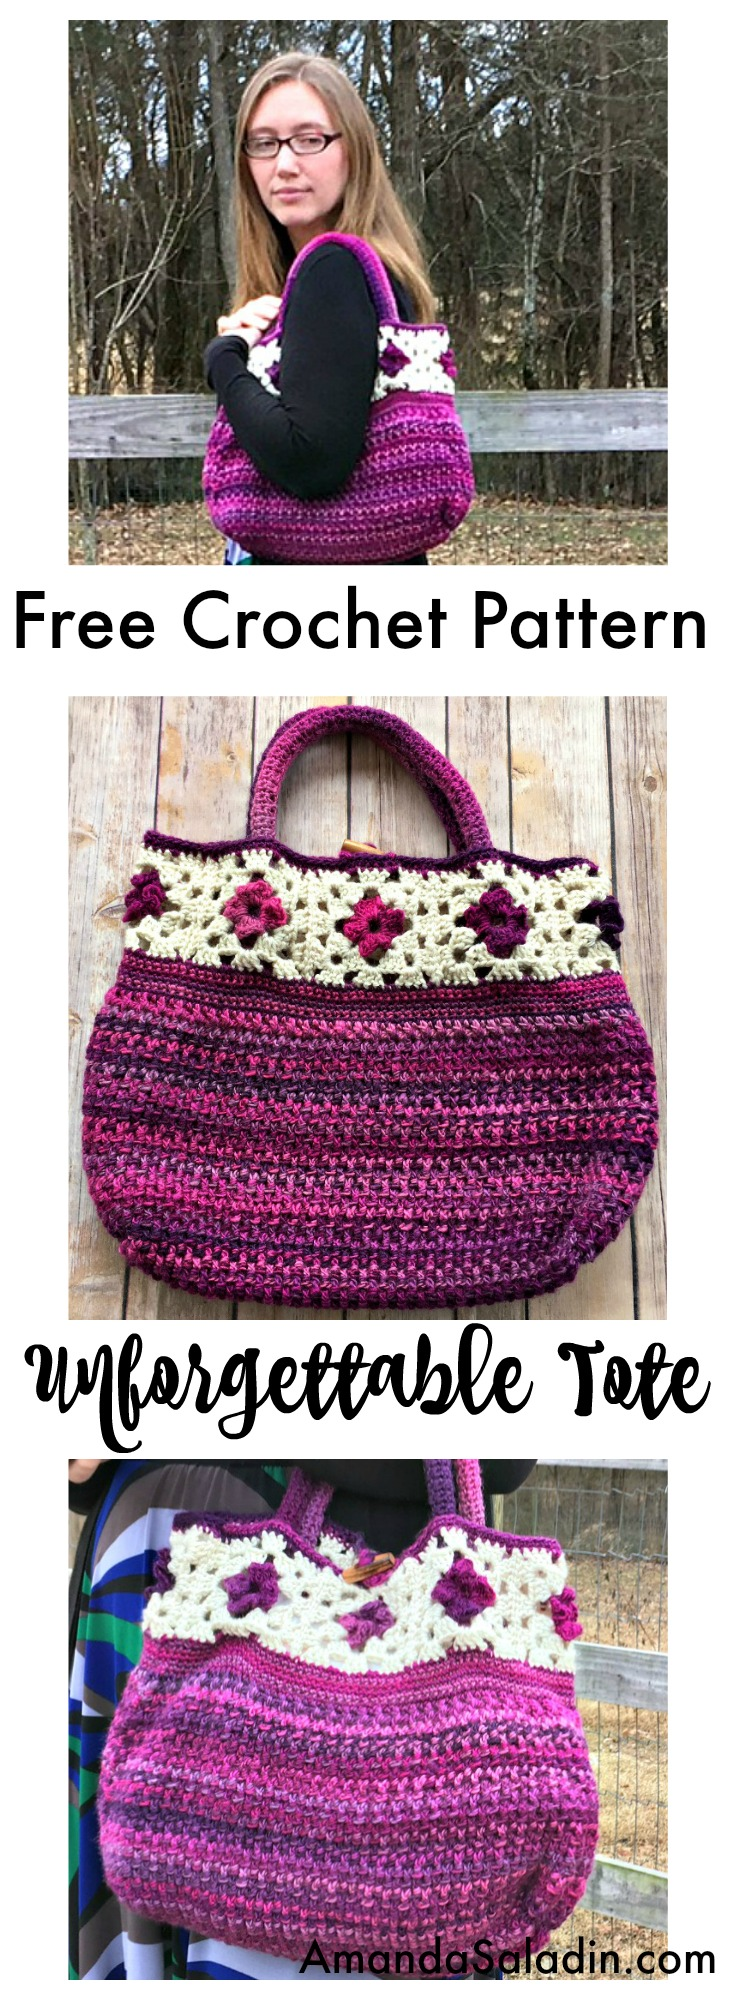 A cute, stylish FREE crochet pattern! I am making this!